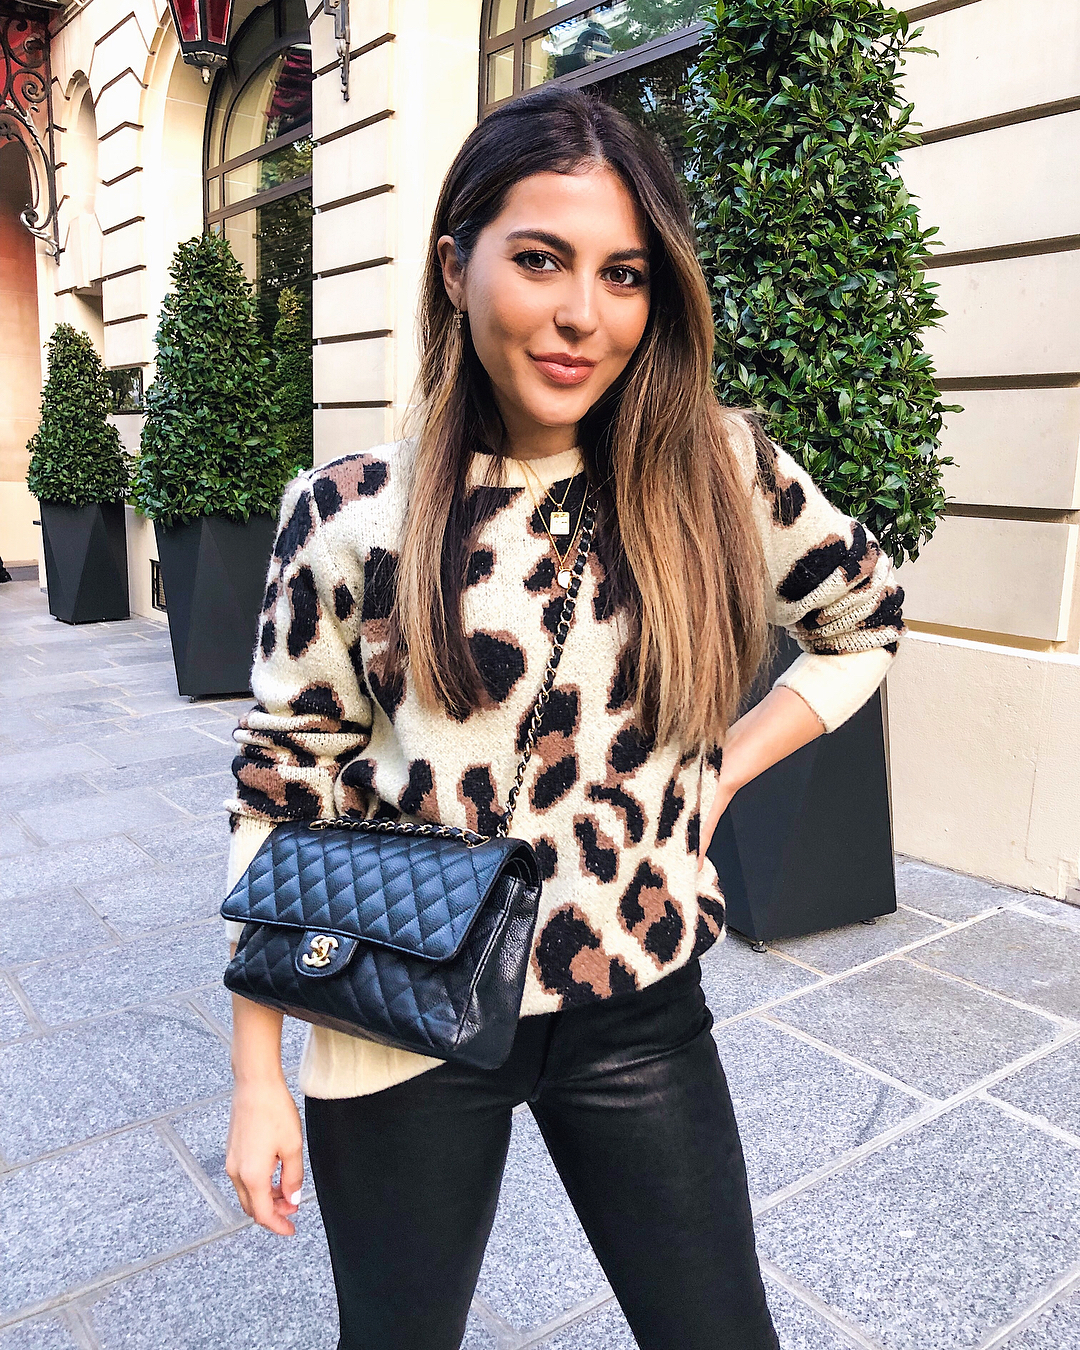 Leopard blogger outfit